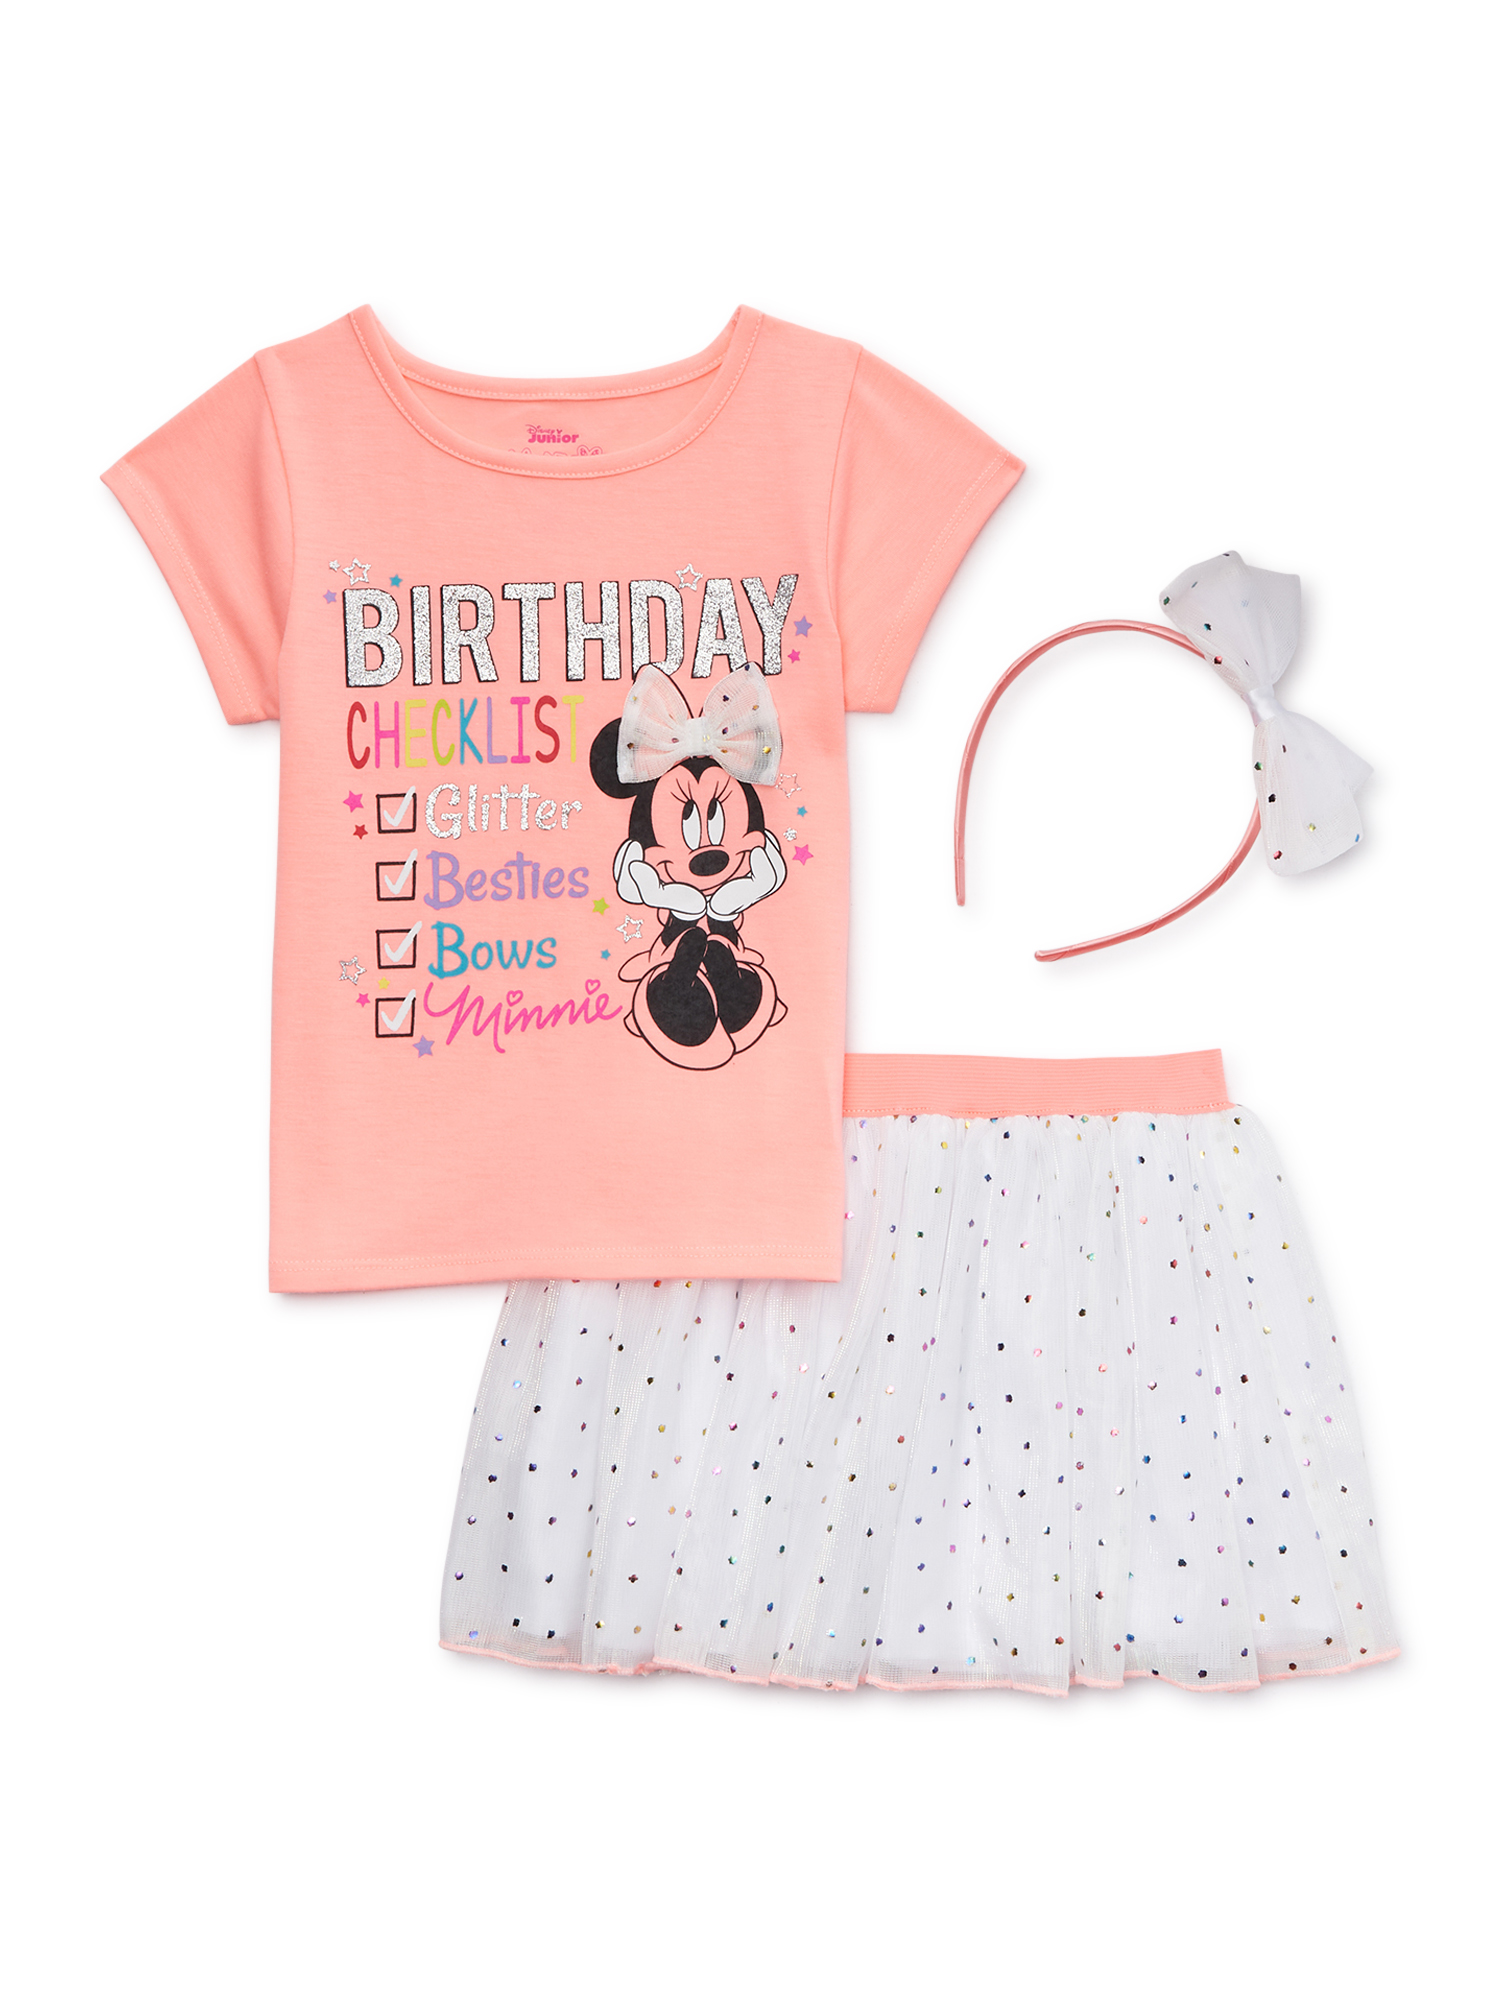 NEW Boutique Mermaid Minnie Mouse Purple Shorts Girls Outfit